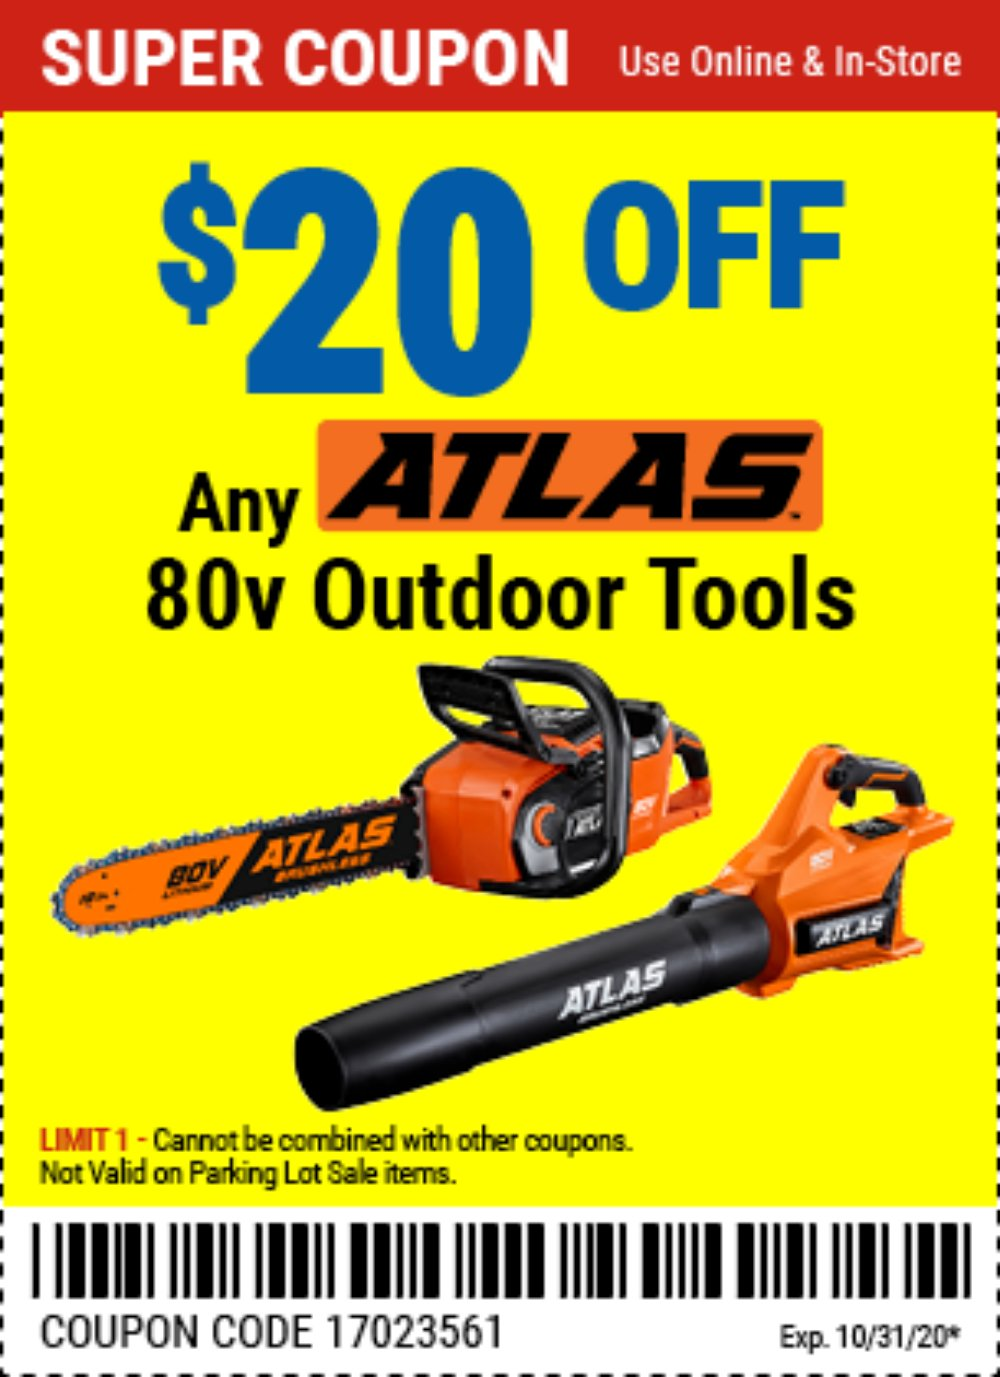 Harbor Freight Coupon, HF Coupons - $20 off Atlas 80v Outdoor Tools